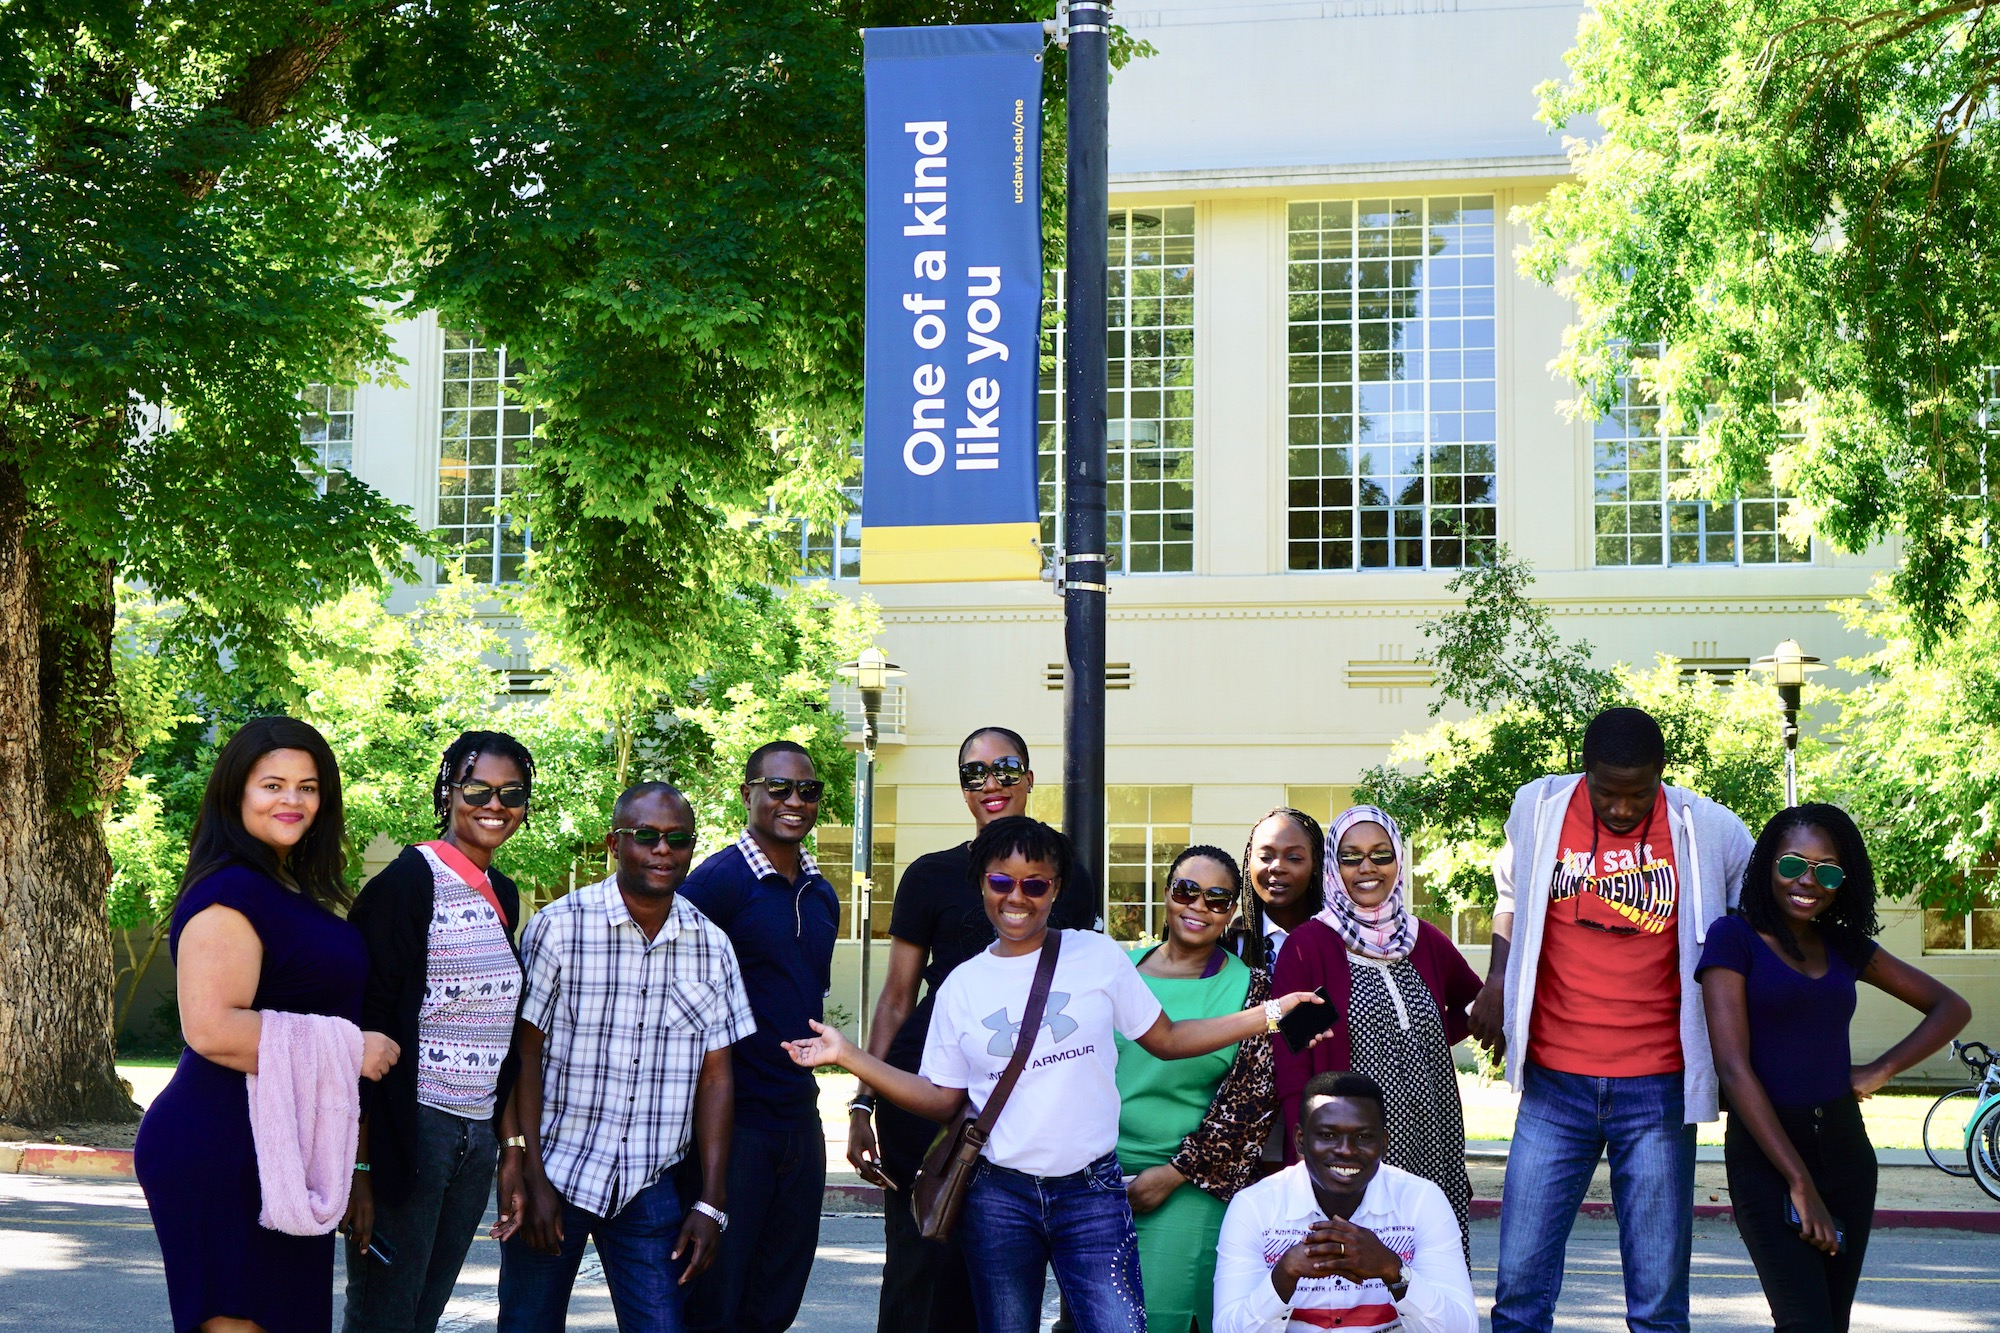 Mandela Fellows at UC Davis sign on campus